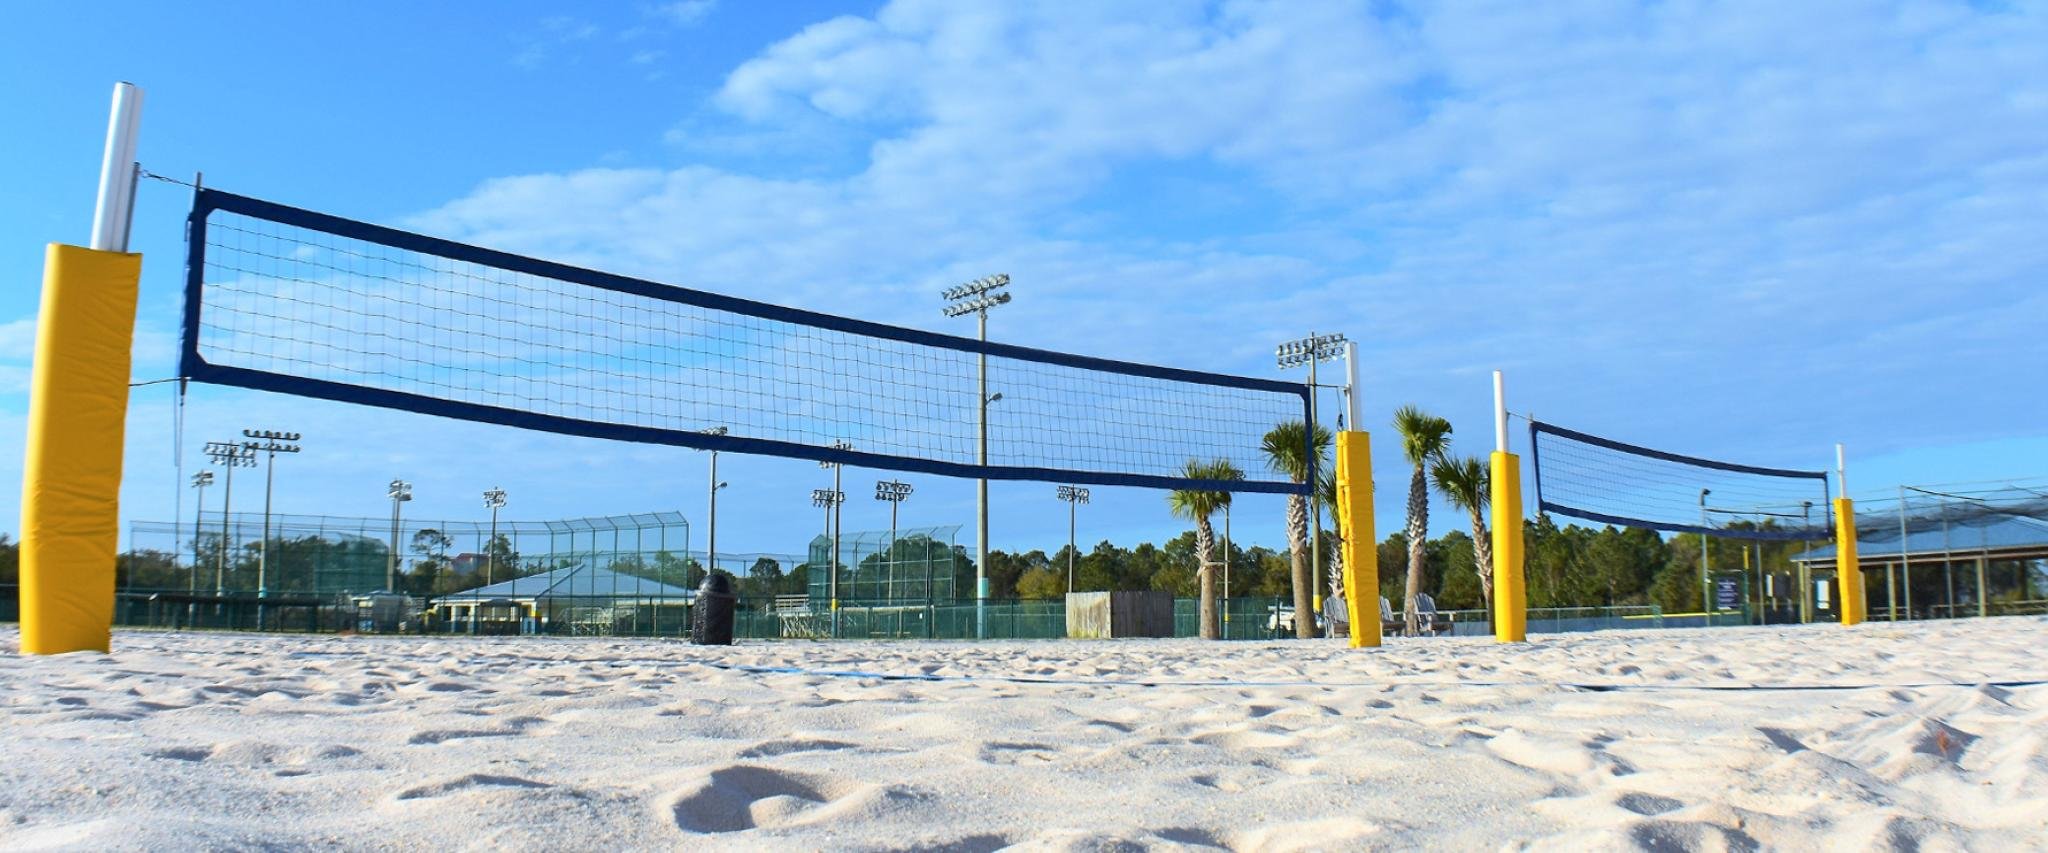 Sporting Event Venues in Gulf Shores and Orange Beach